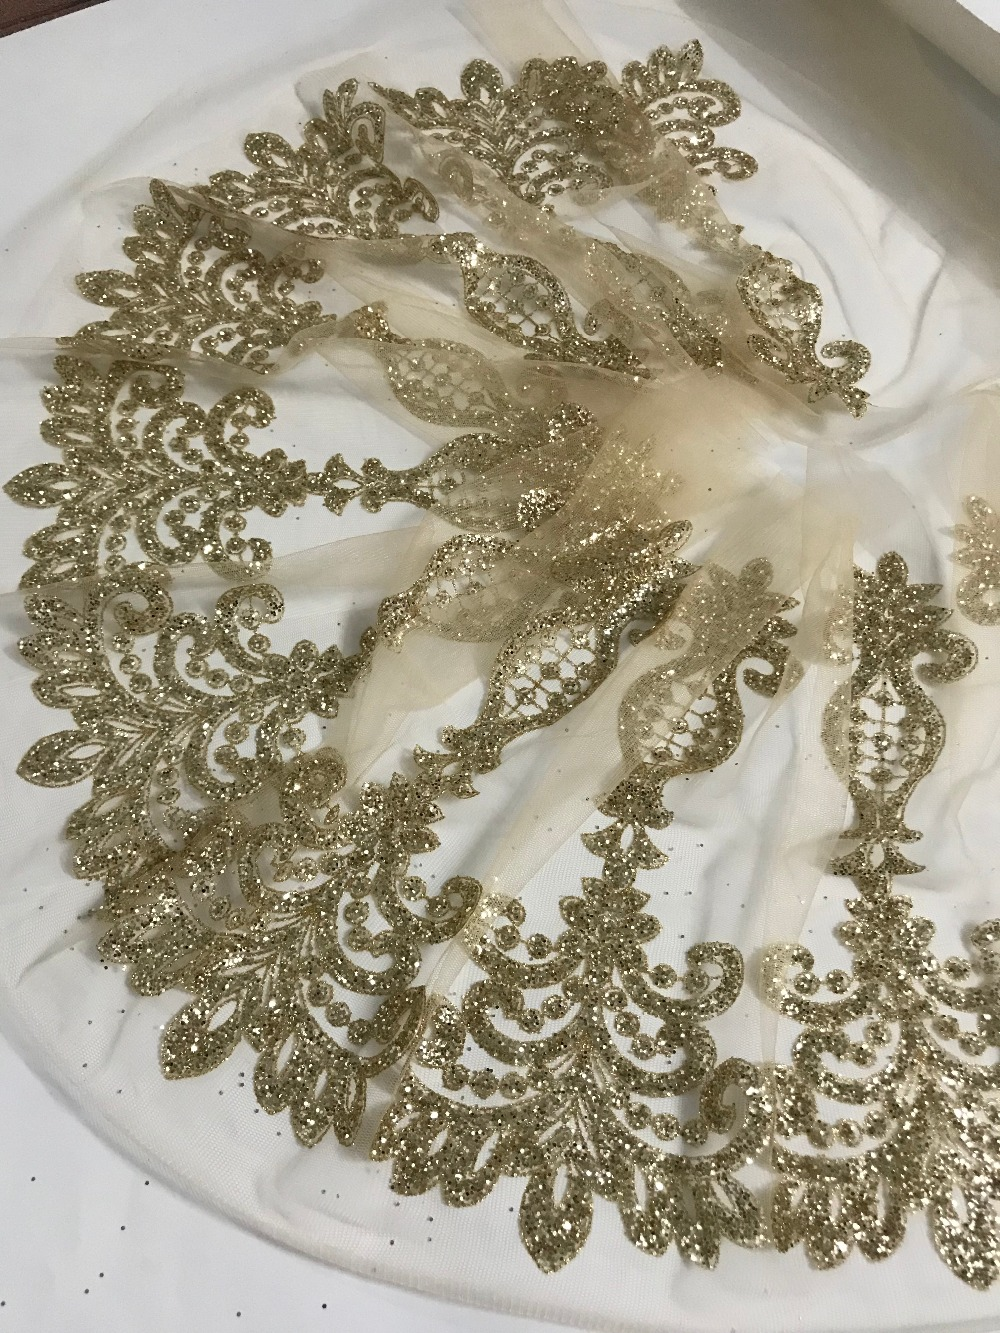 JIANXI C 91611 new 10 yards lot gold glued glitter lace trim tulle lace for fahion